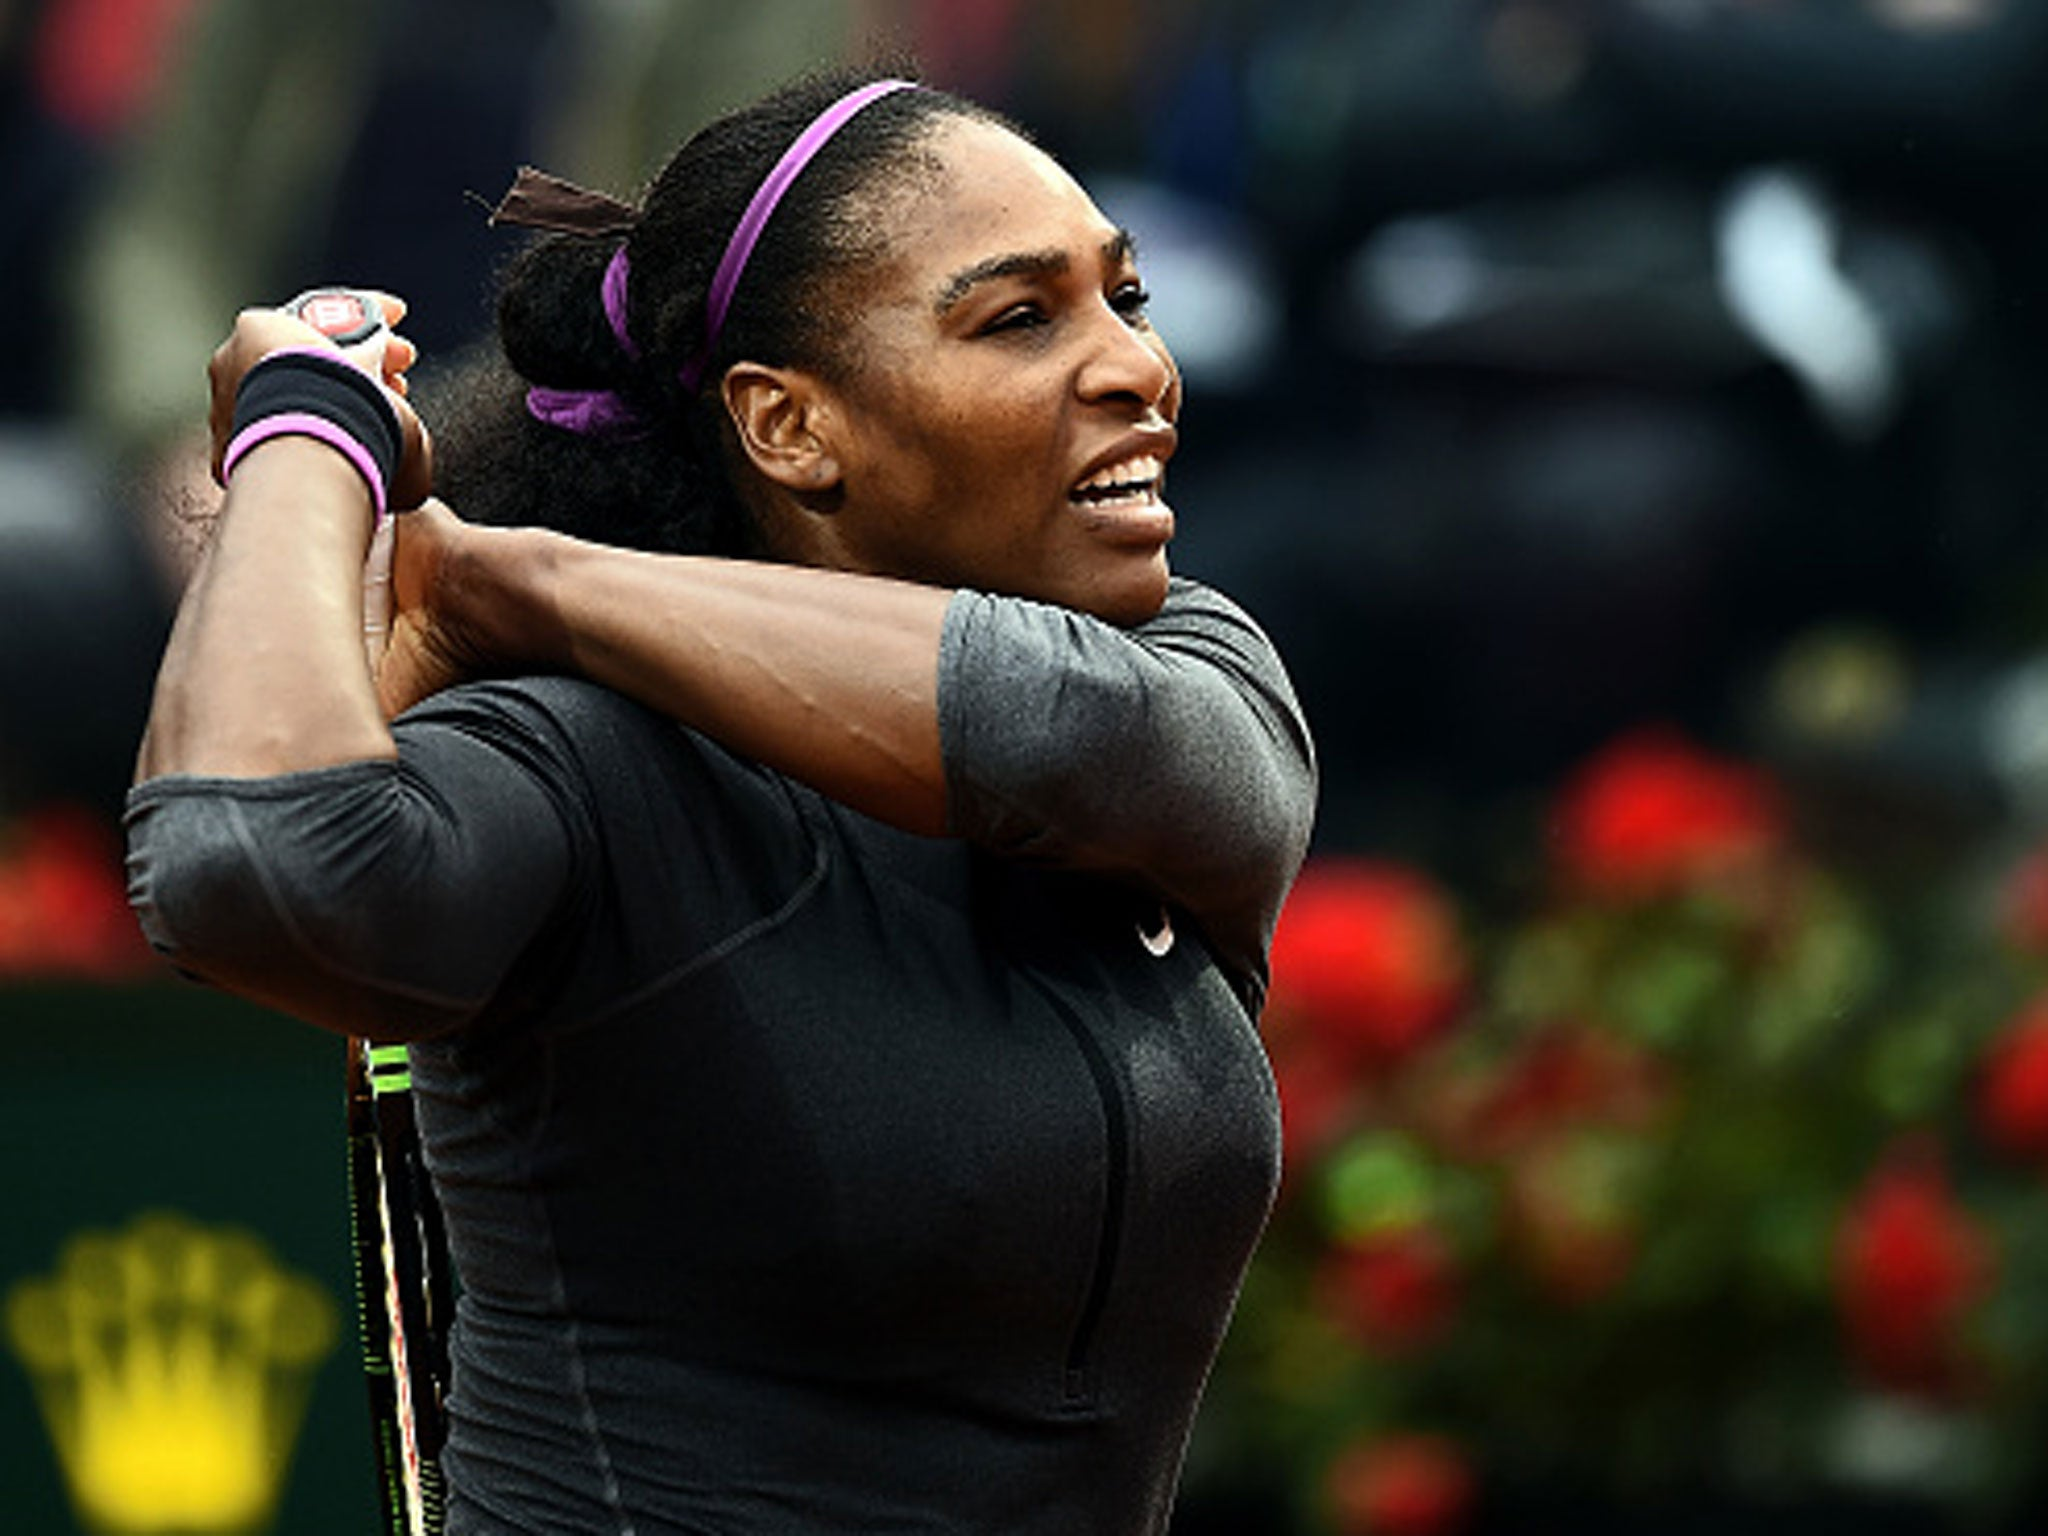 Serena Williams continues return after two months out to make final in Rome | Tennis | Sport | The Independent